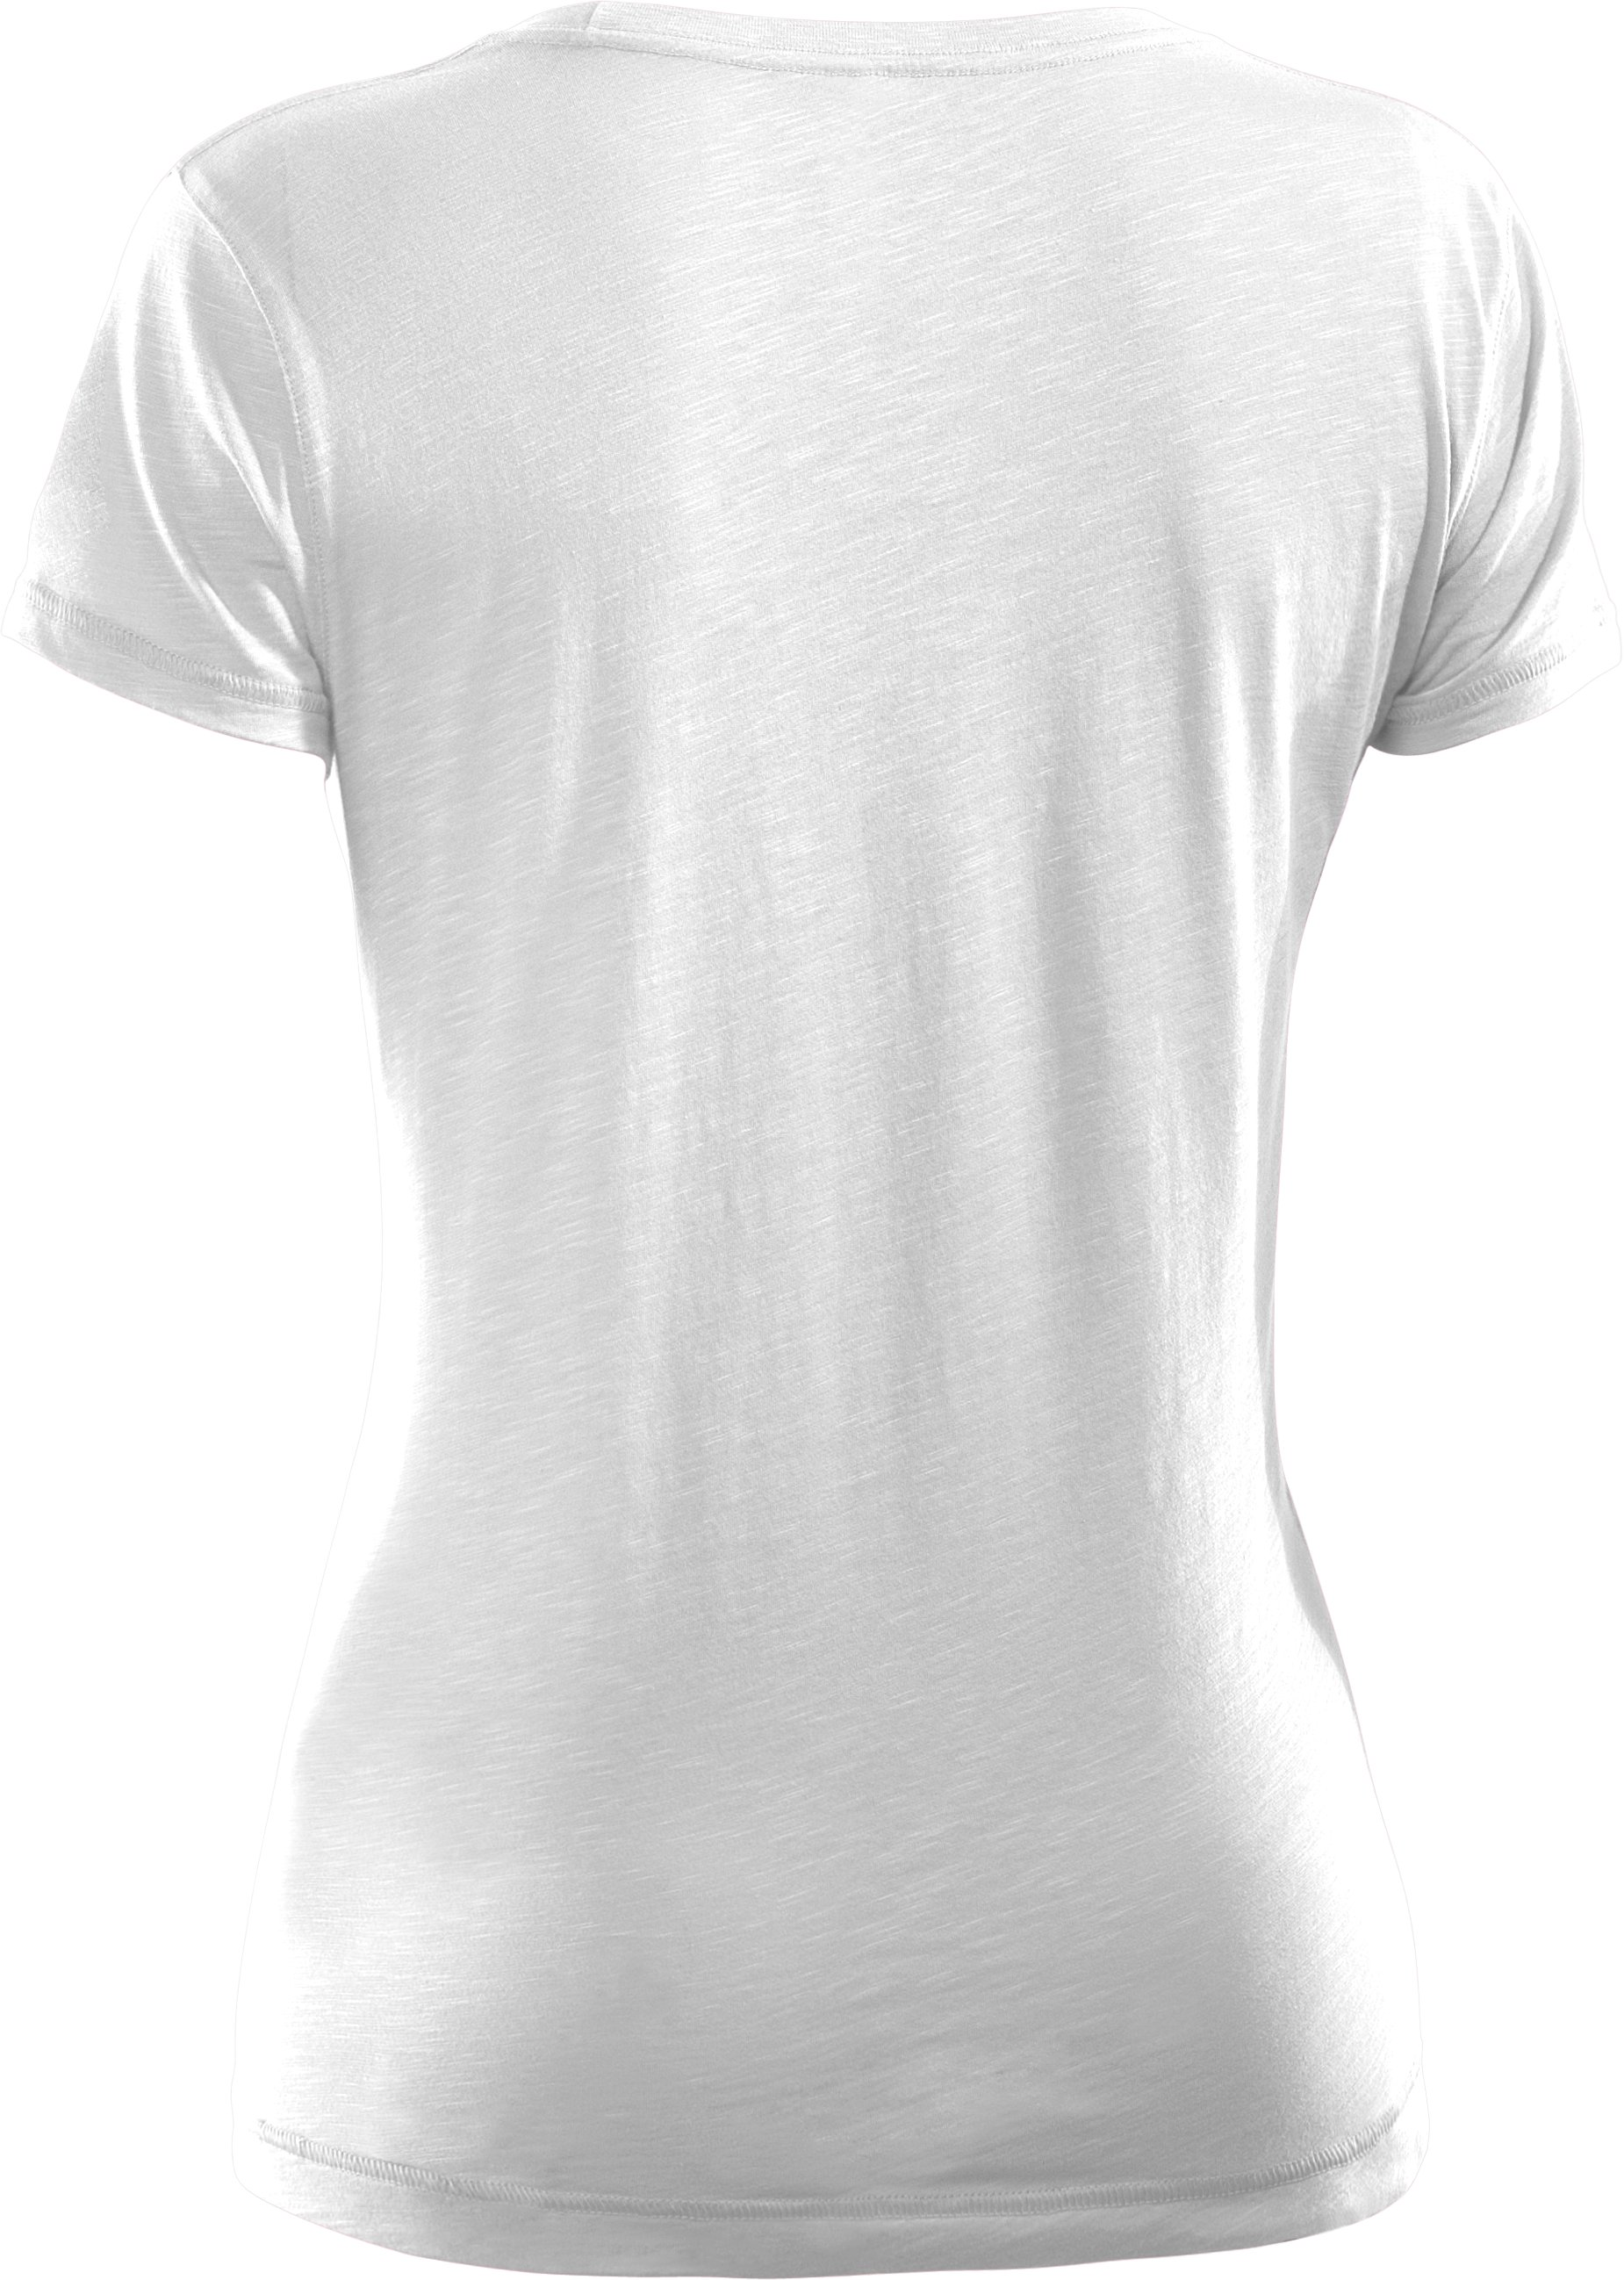 Women's Charged Cotton® Sassy Slub T-Shirt, White